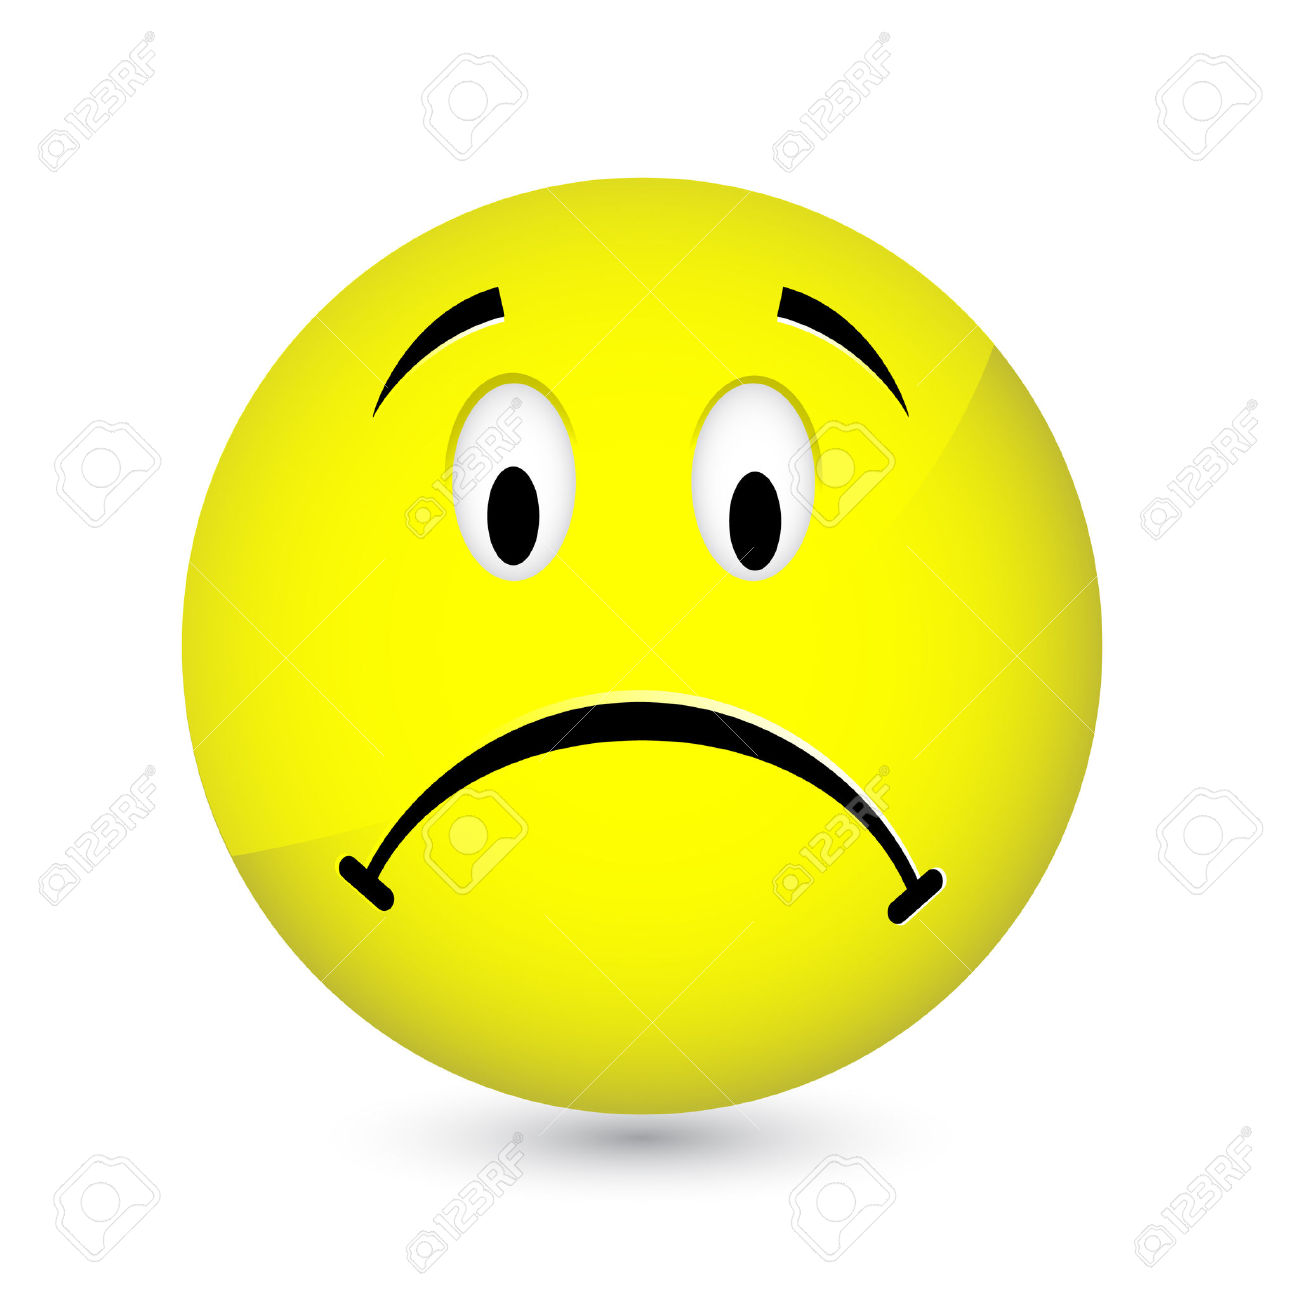 Emotions clipart disappointed face Face clipart Sad Crazy face